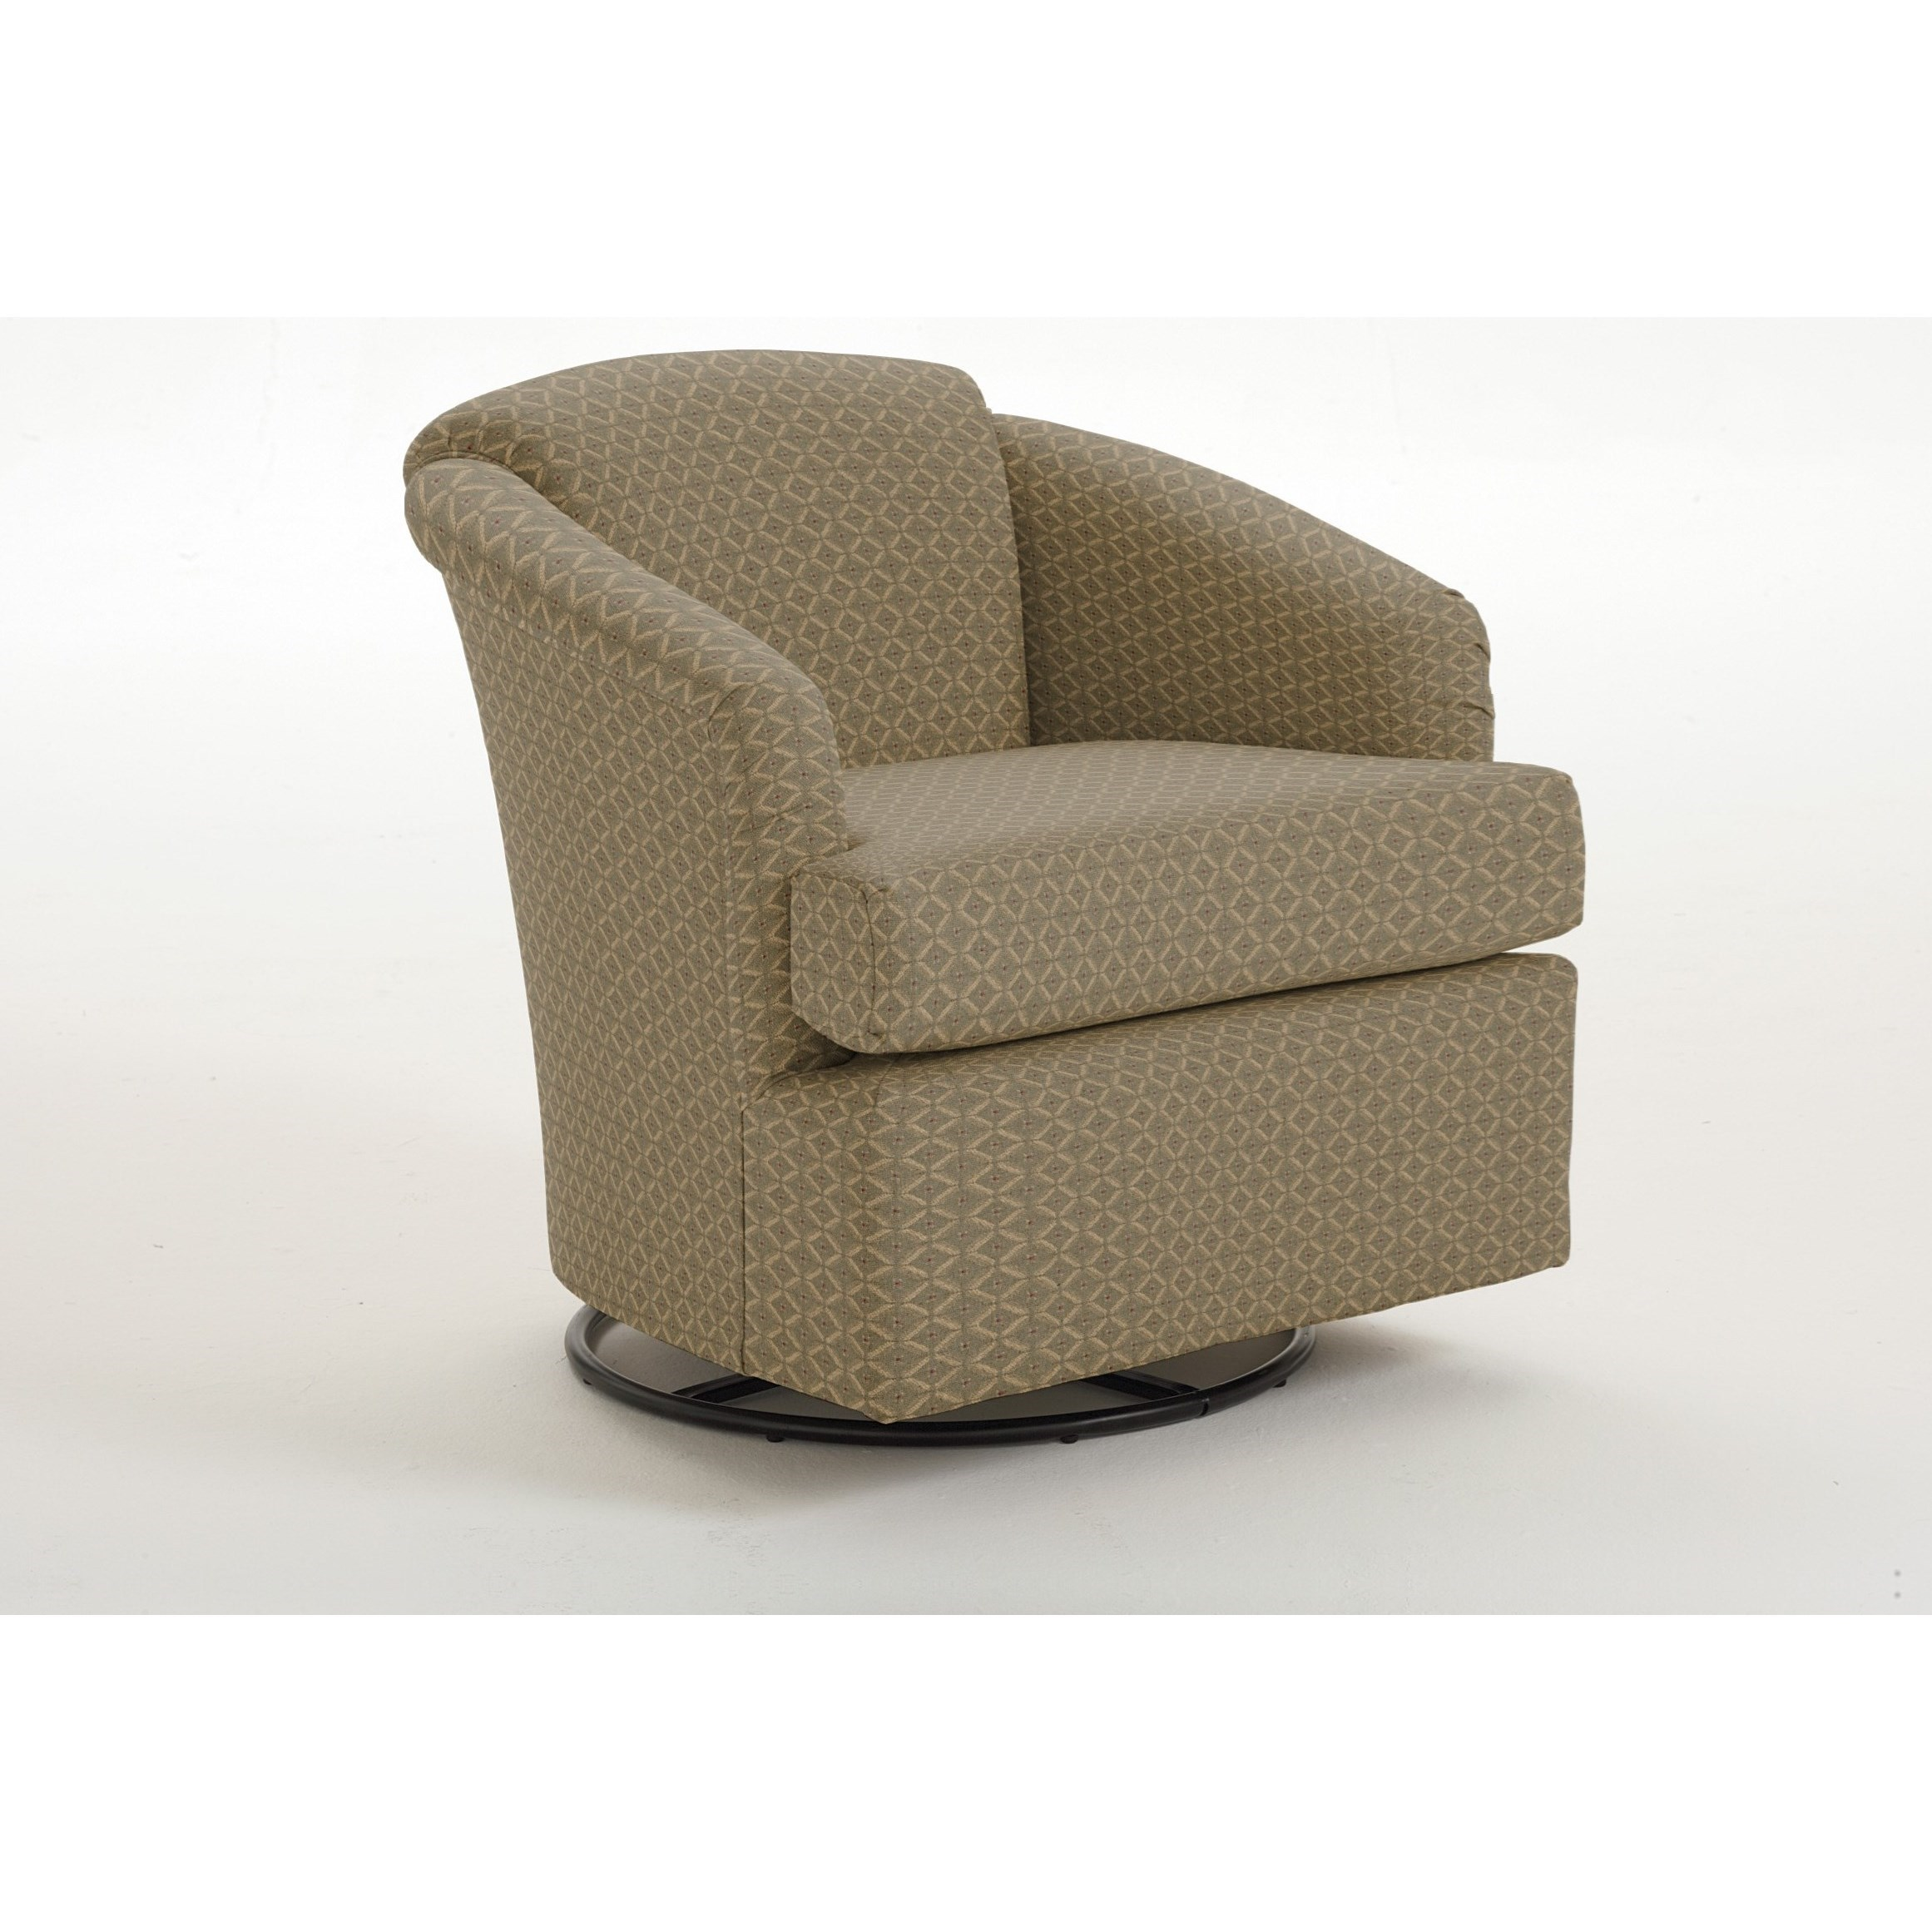 Cass Cass Swivel Glider by Best Home Furnishings at Rooms and Rest